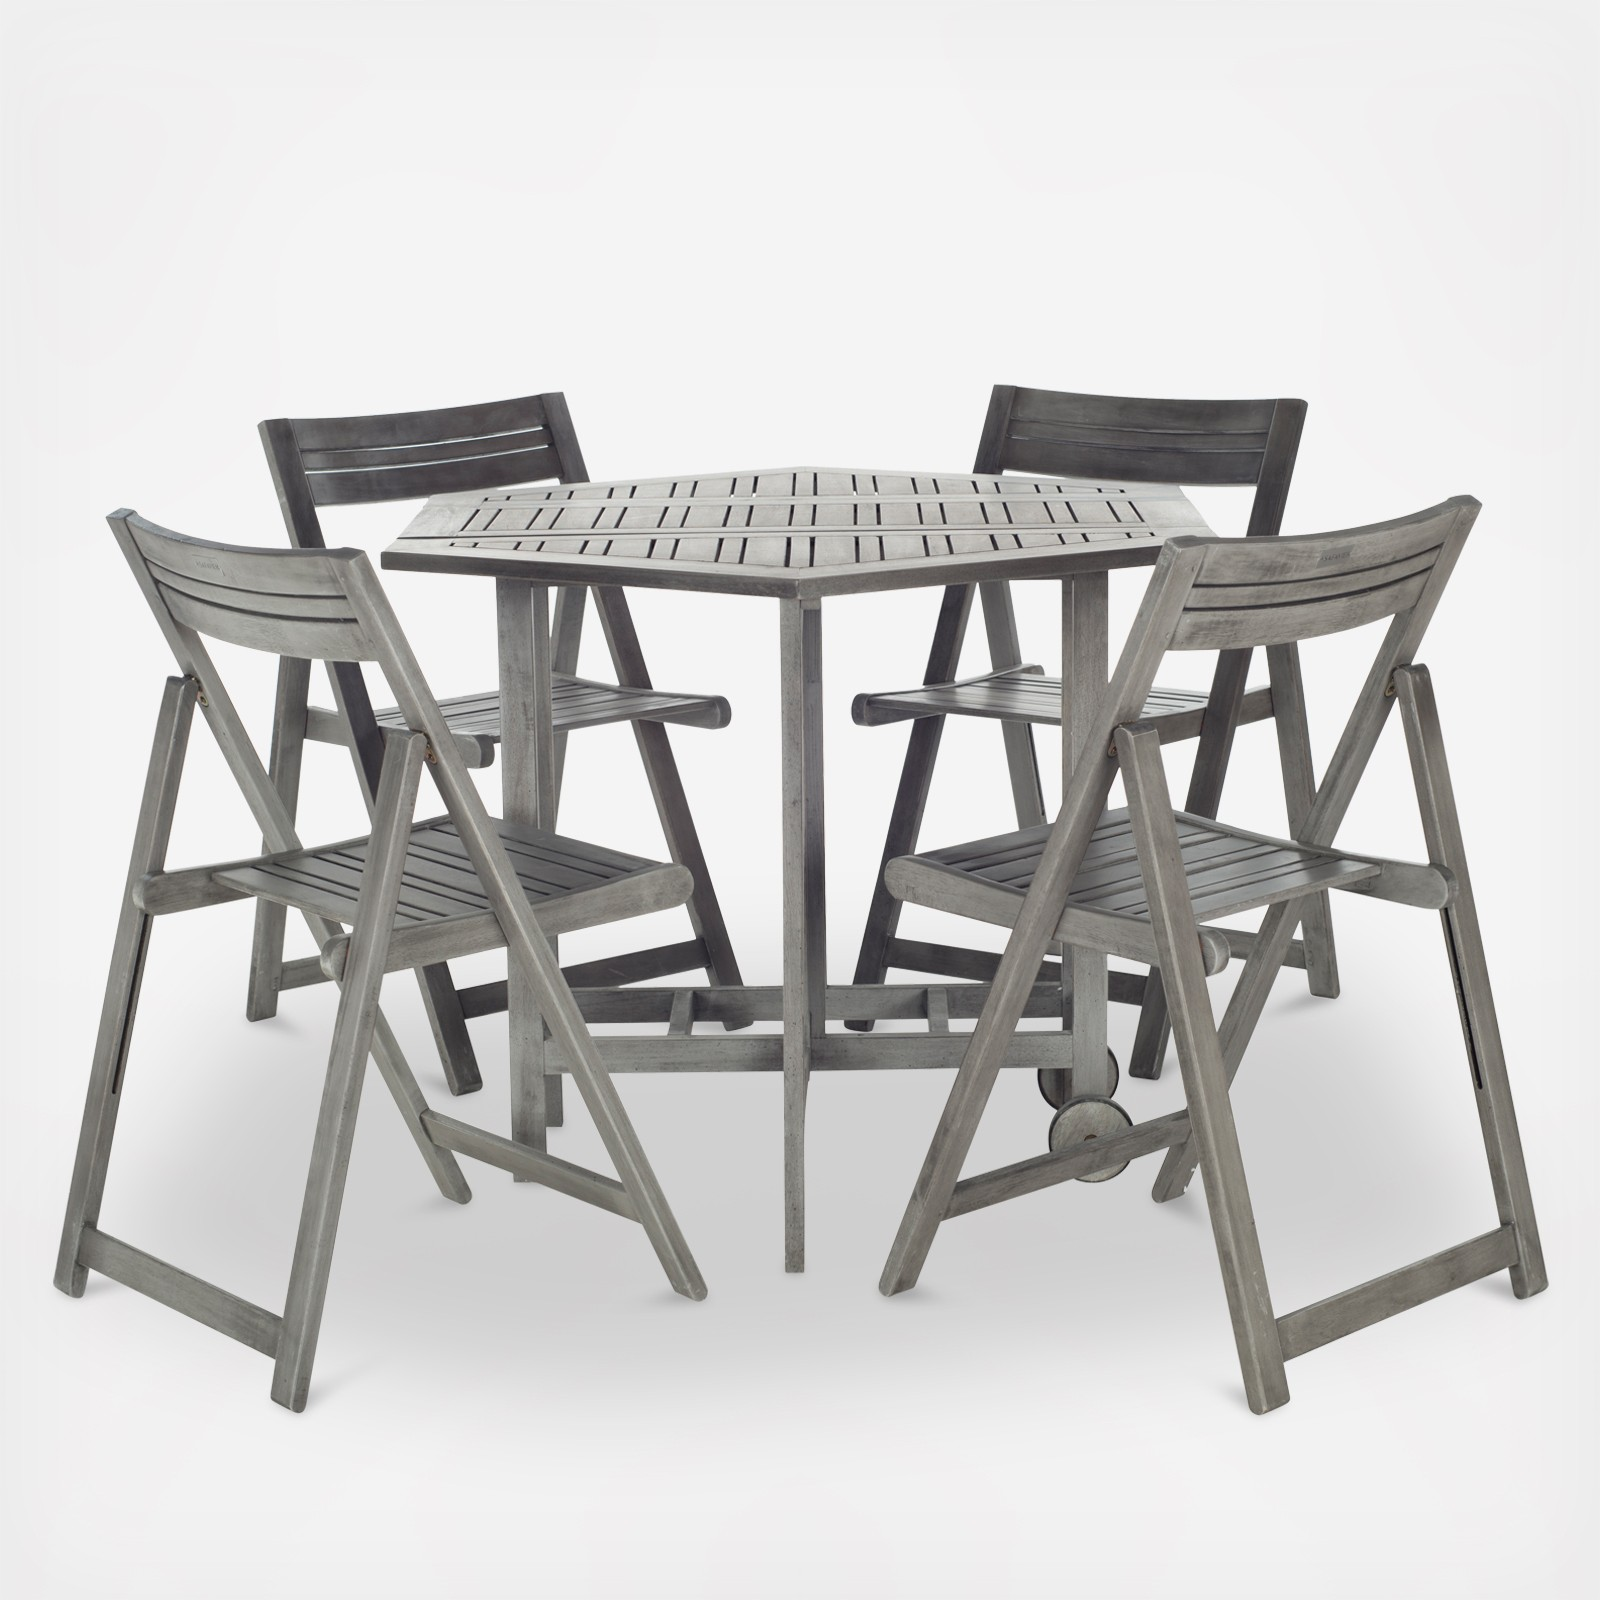 dining and open choose your adorable chairs table chair for space furniture home small a folding